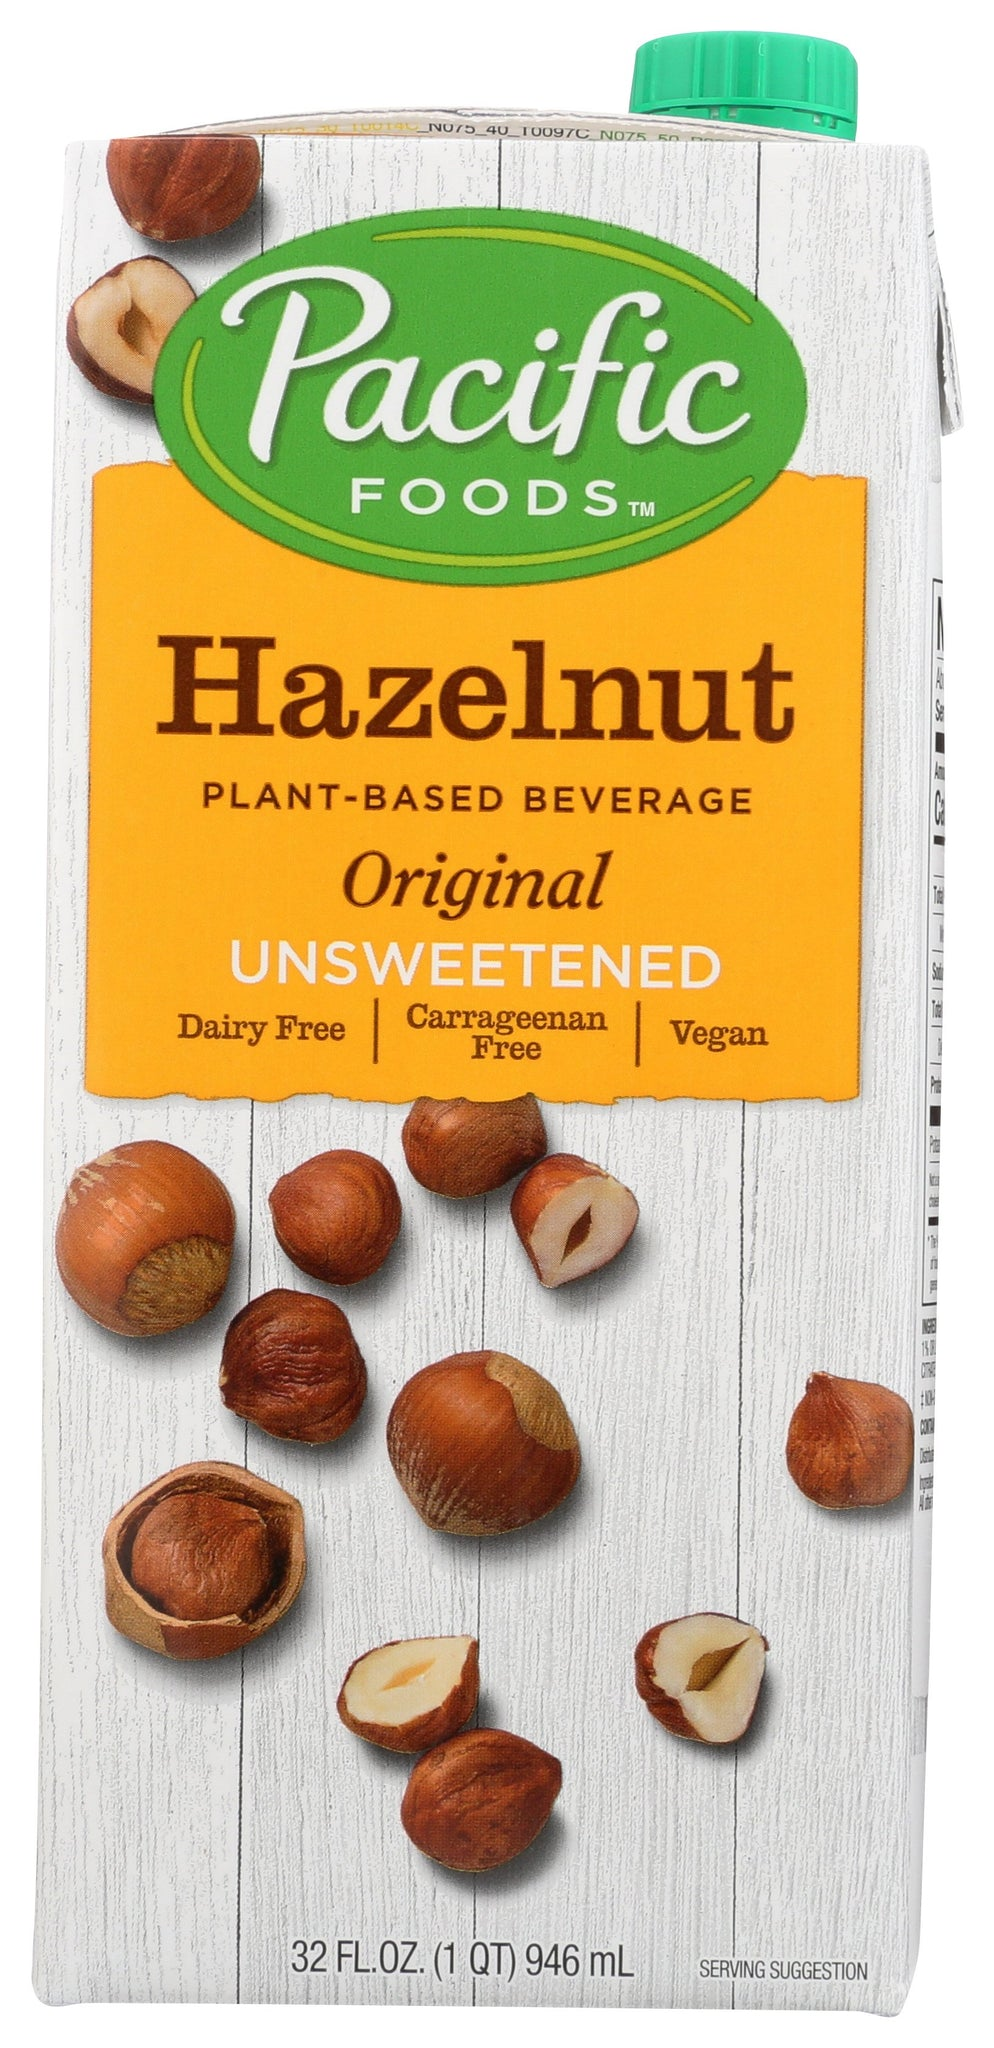 Pacific Foods Hazelnut Original Unsweetened, 32 fl oz (Pack of 6)